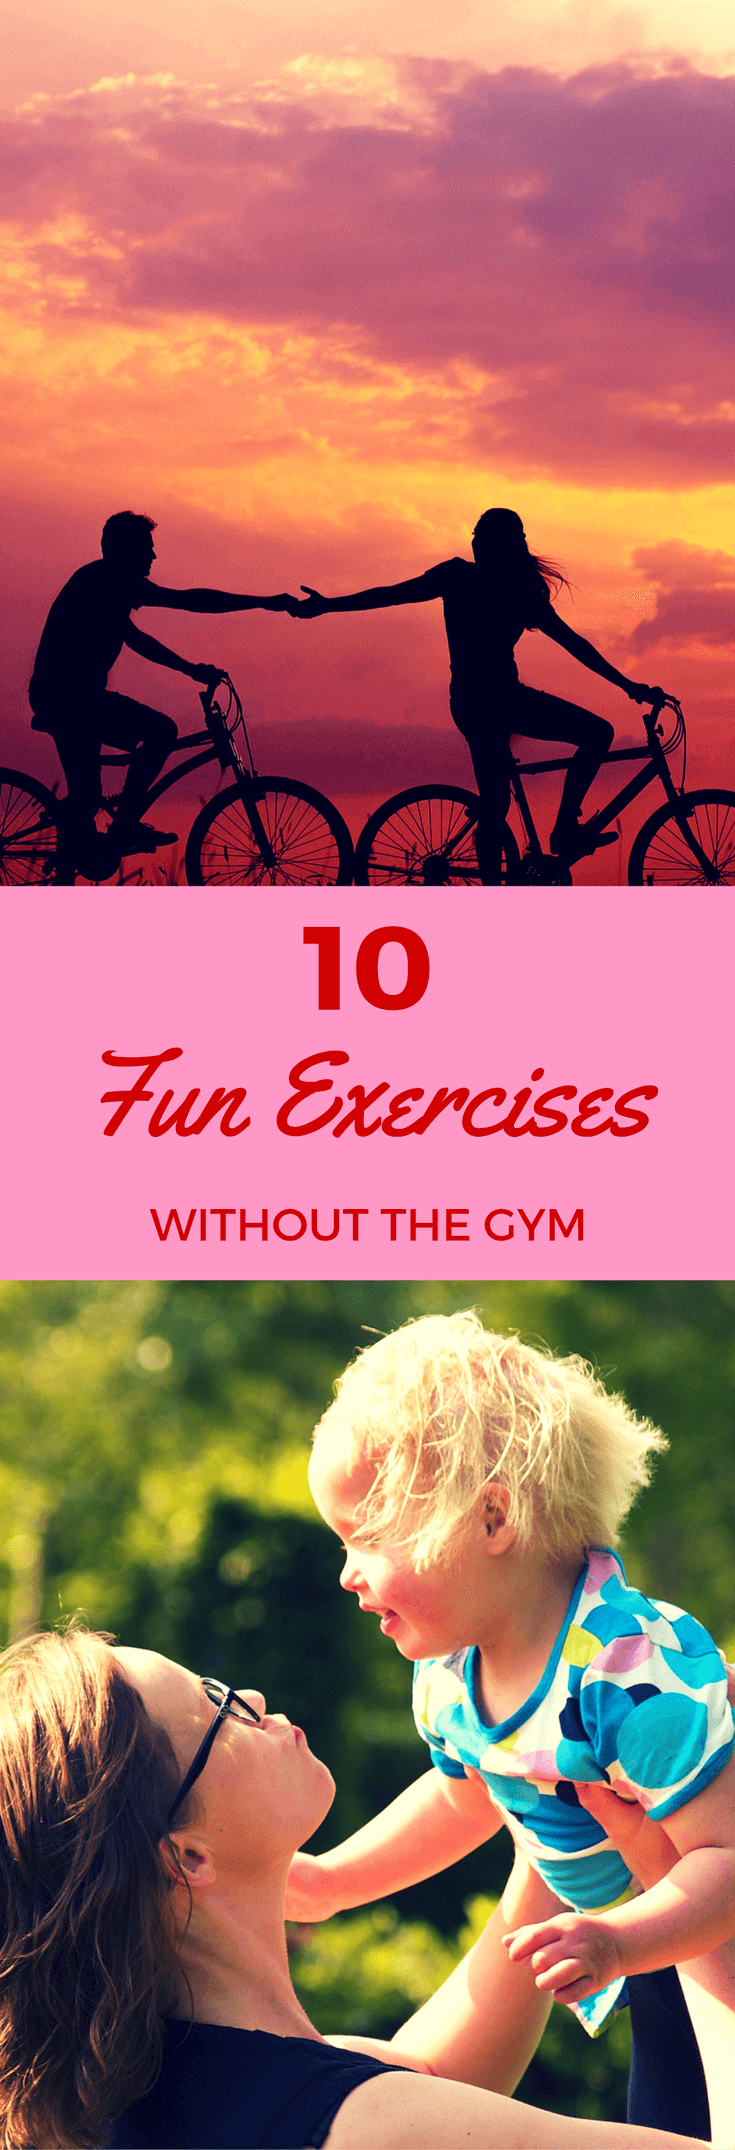 10 fun exercise ideas, activities and tips at home or outdoors to complement a diet for weight loss.